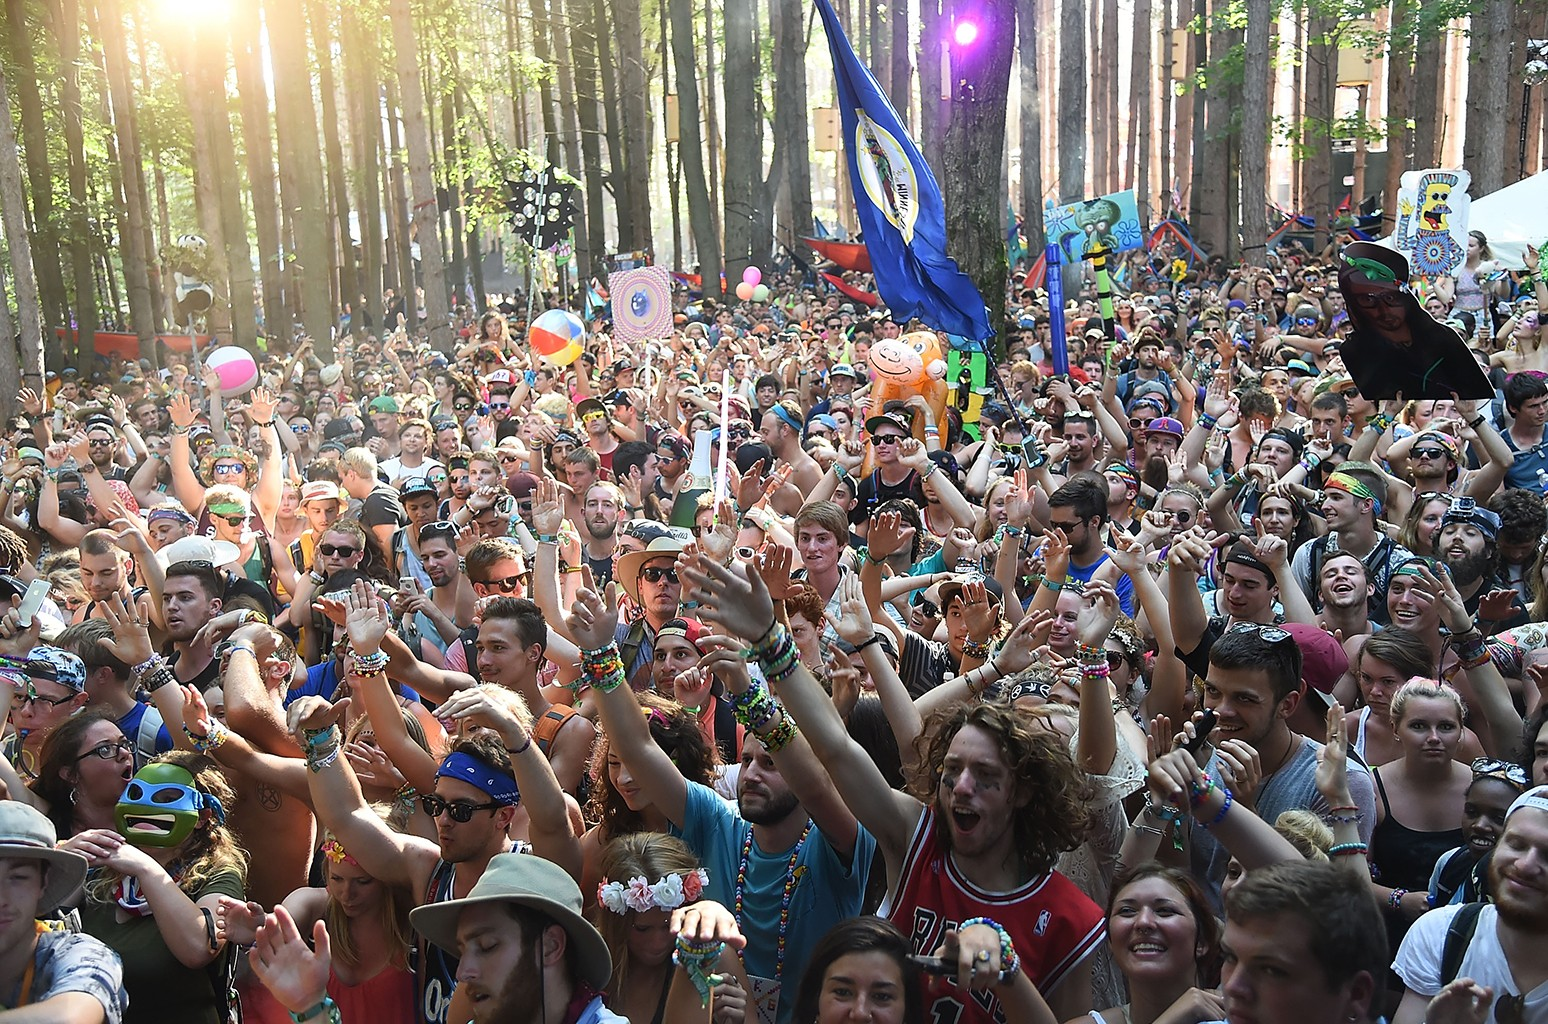 Atmosphere as Kygo performs during Day 4 of the 2014 Electric Forest Festival on June 29, 2014 in Rothbury, Michigan.